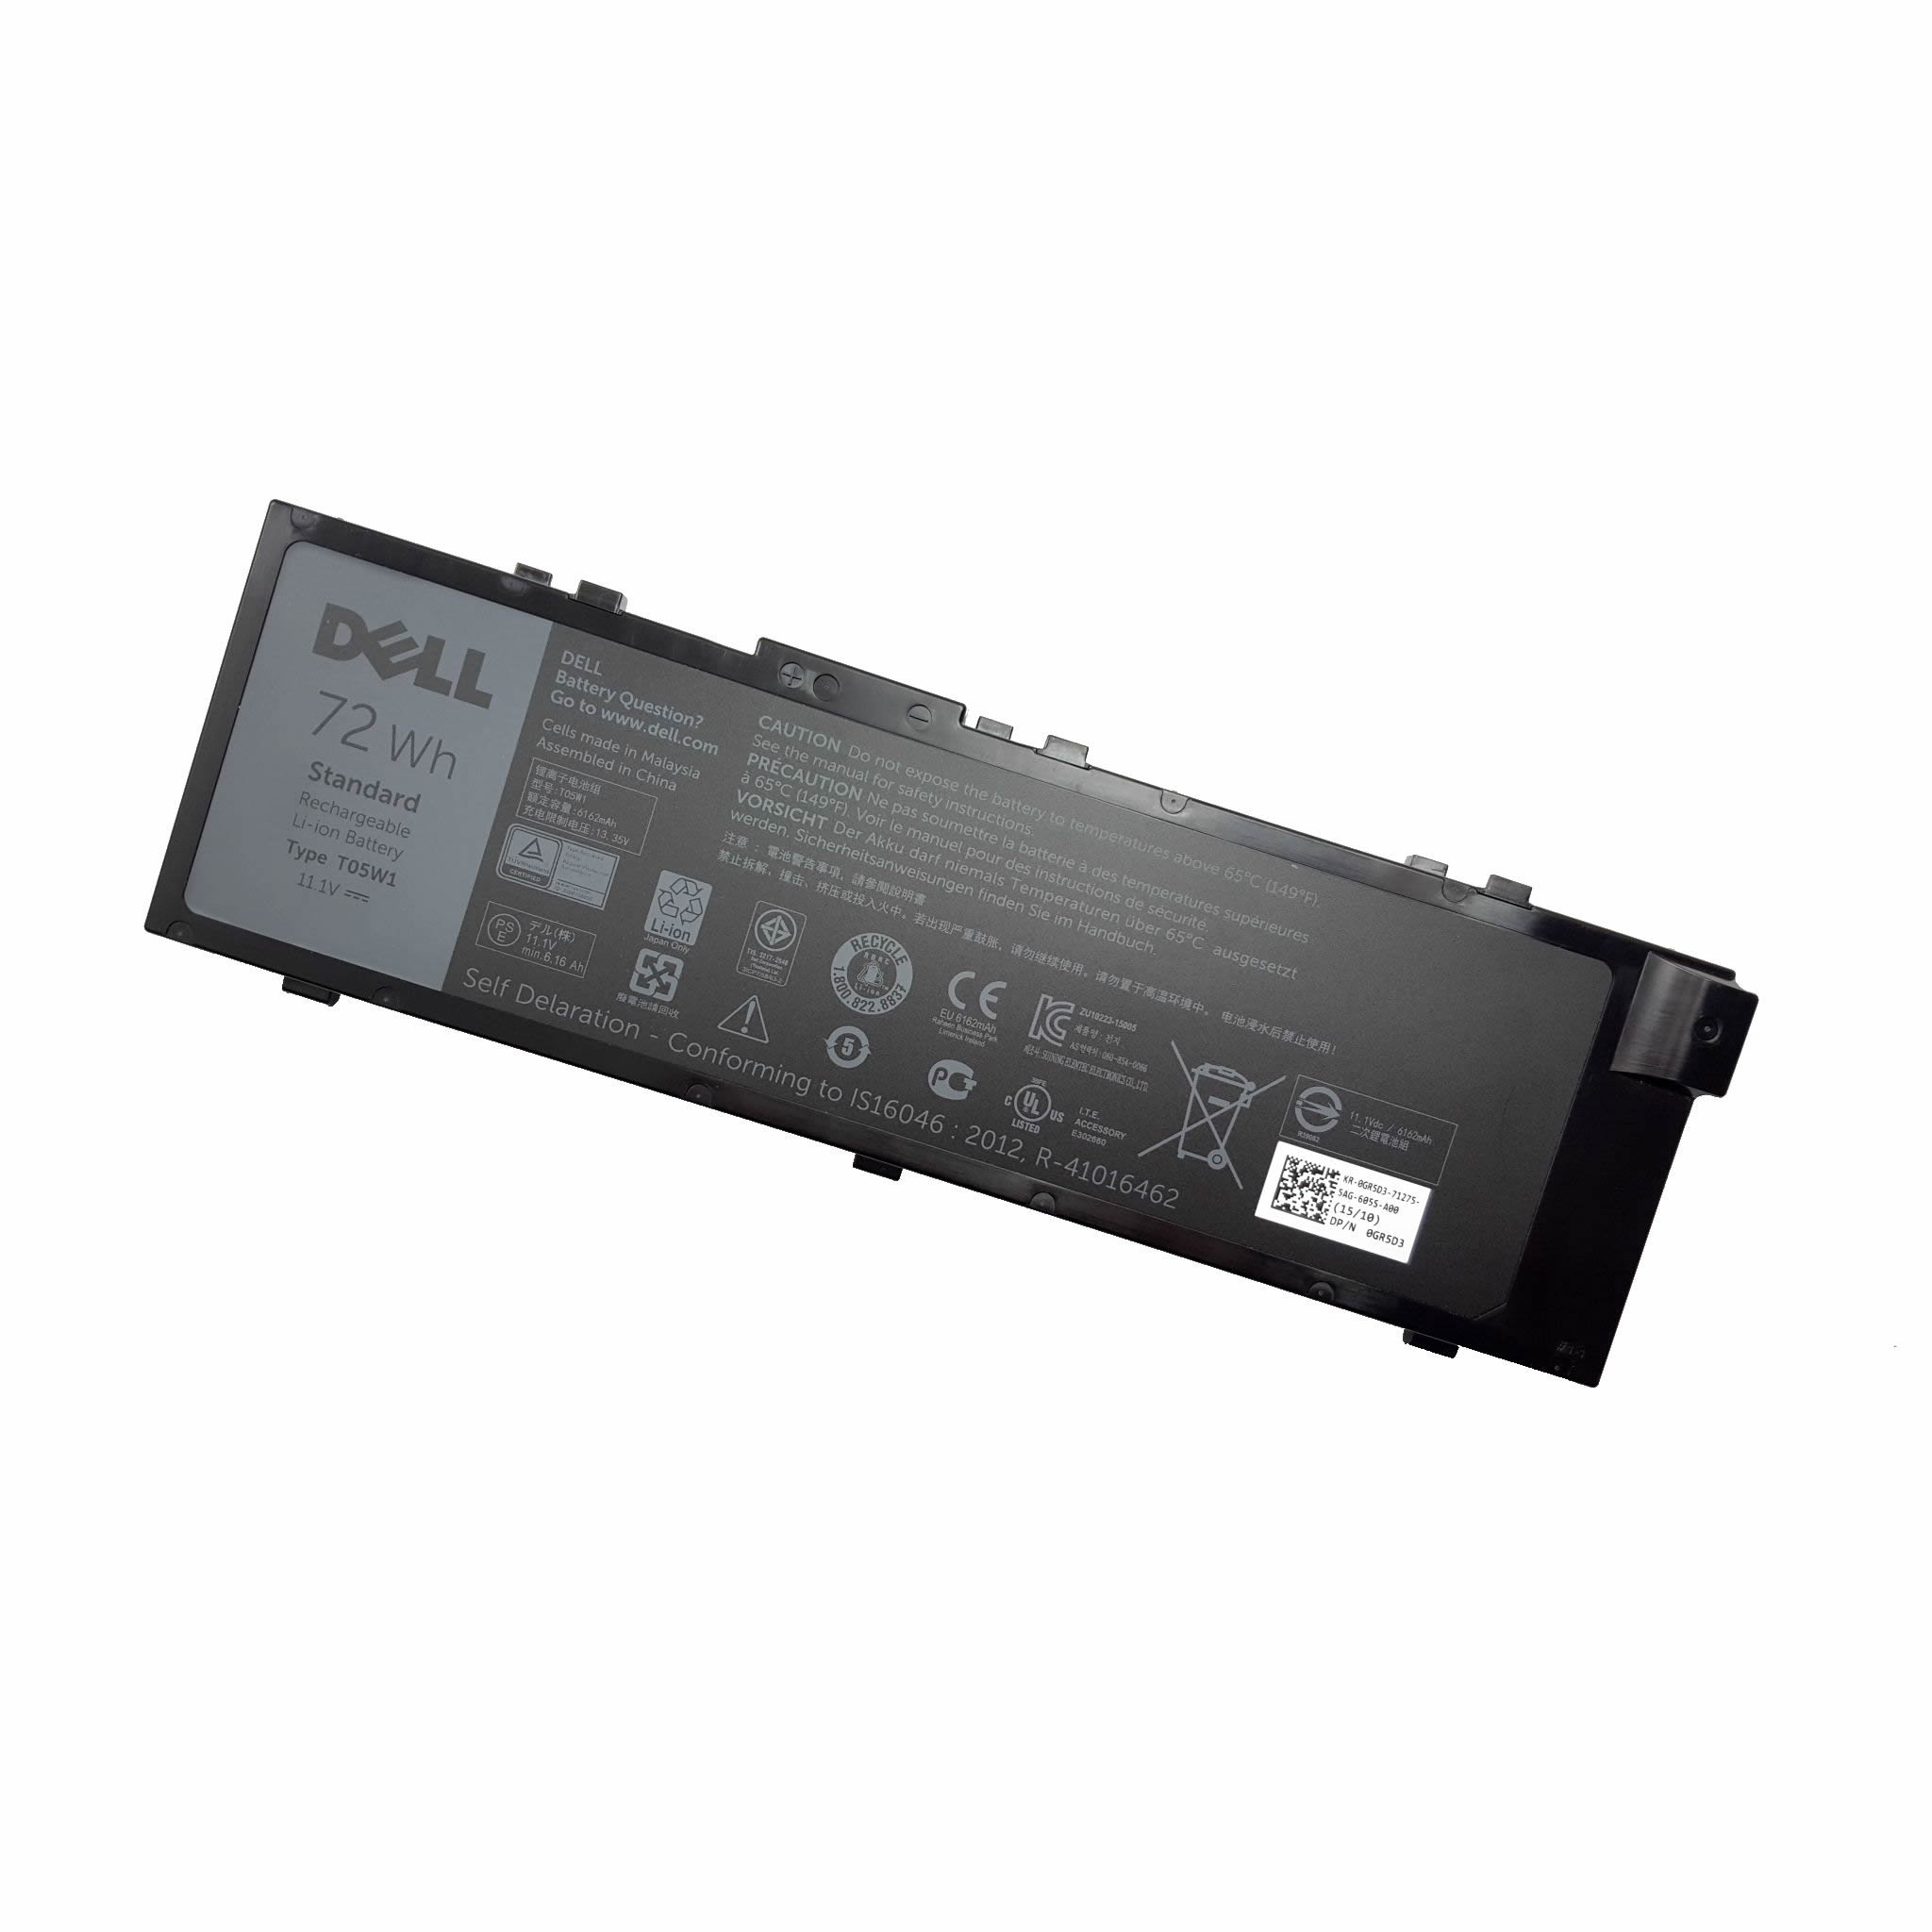 Dell T05W1 MFKVP 451-BBSB batterie originale 11.1V 6486mAh, 72Wh pour ordinateur portable Dell Precision 15 7520, Precision 7520 séries